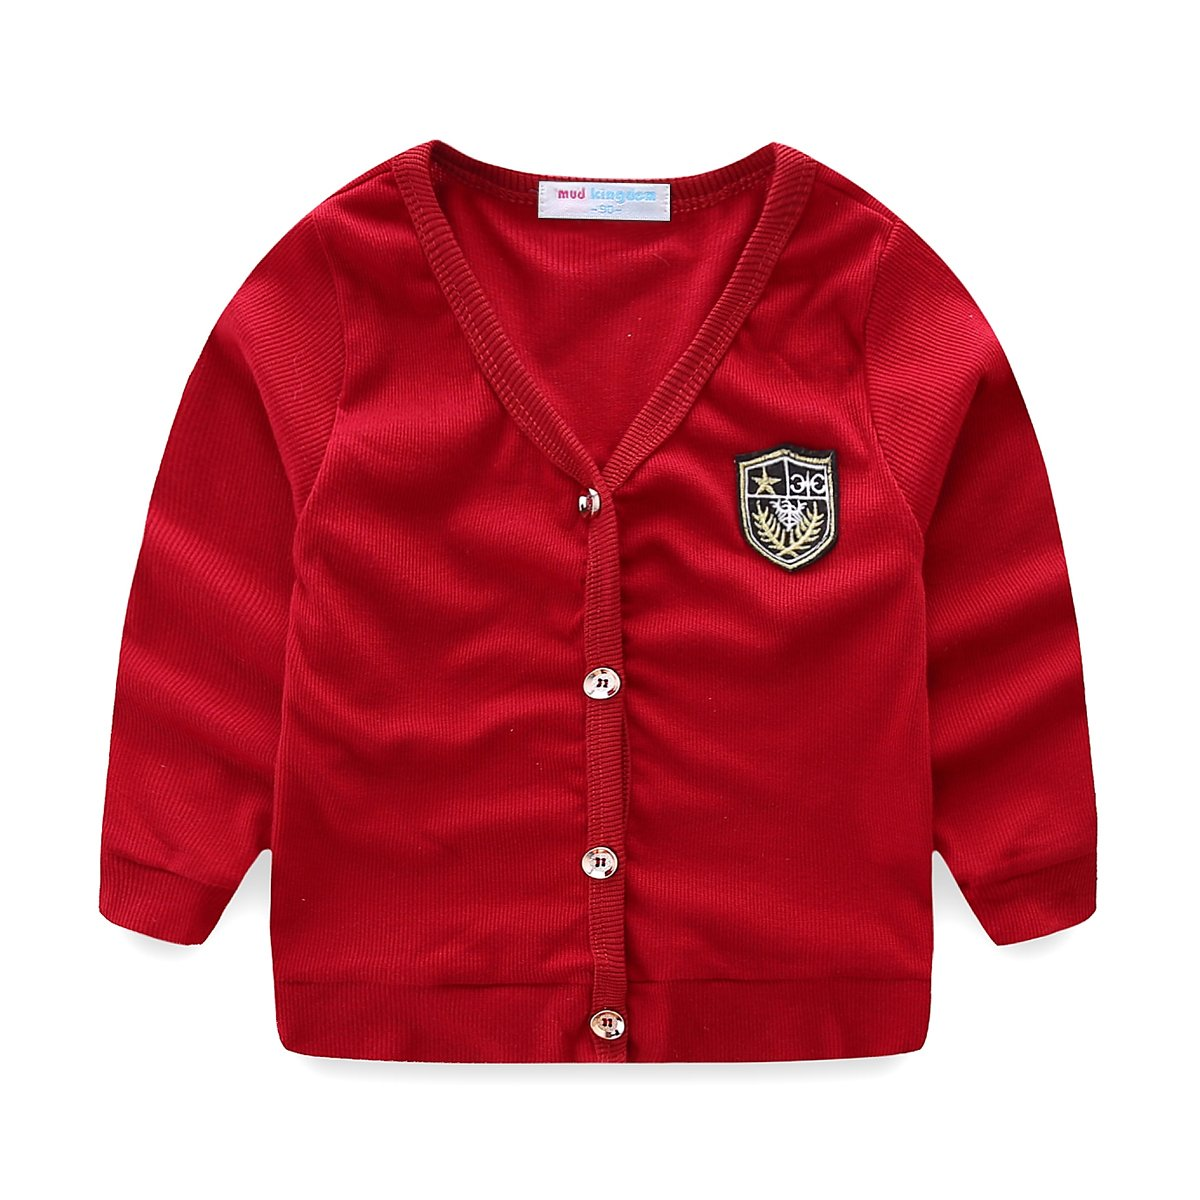 Mud Kingdom Little Boys Dress Coats Lightweight Plain Z-S0431